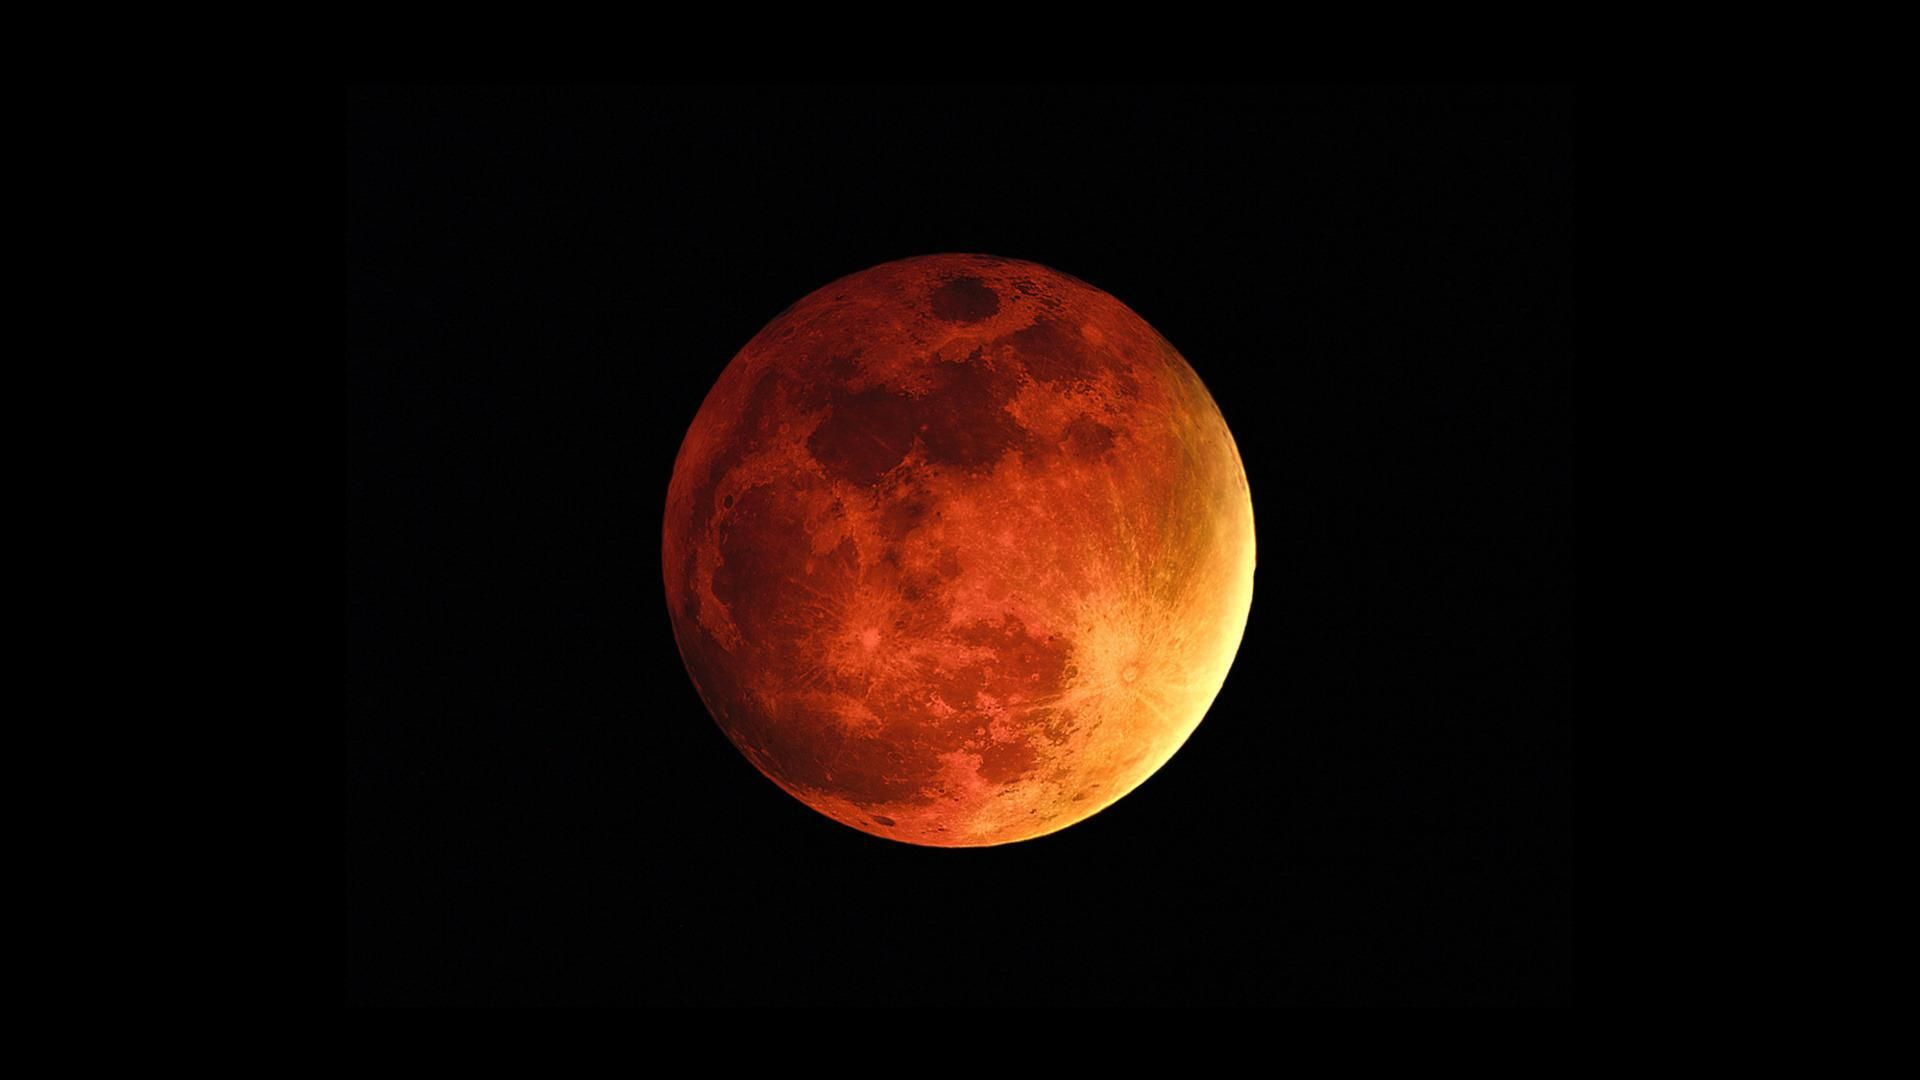 blood moon wallpaper hd, blood moon photos